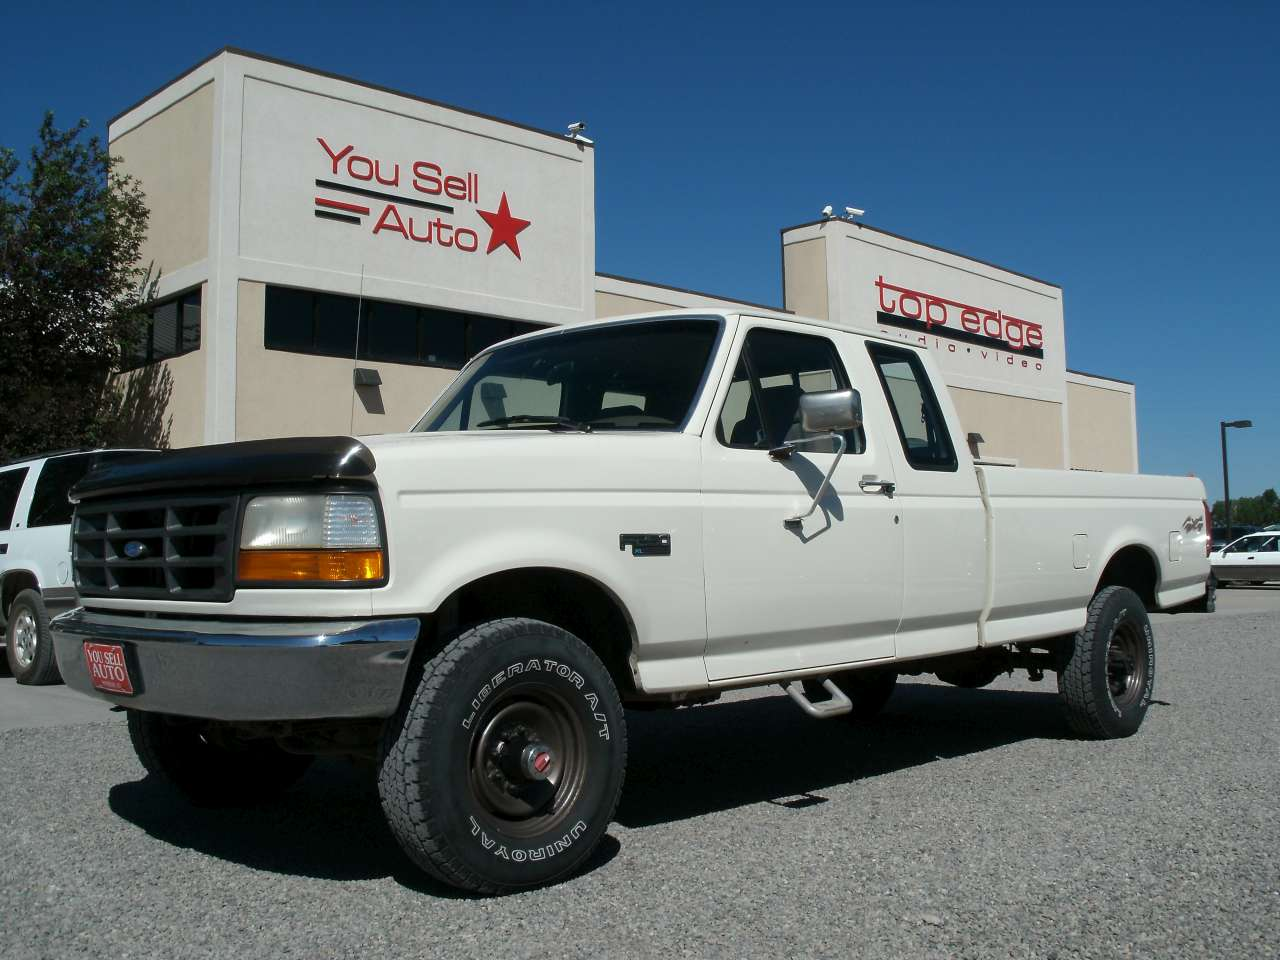 1994 ford f250 xl 4x4 sold you sell auto. Black Bedroom Furniture Sets. Home Design Ideas